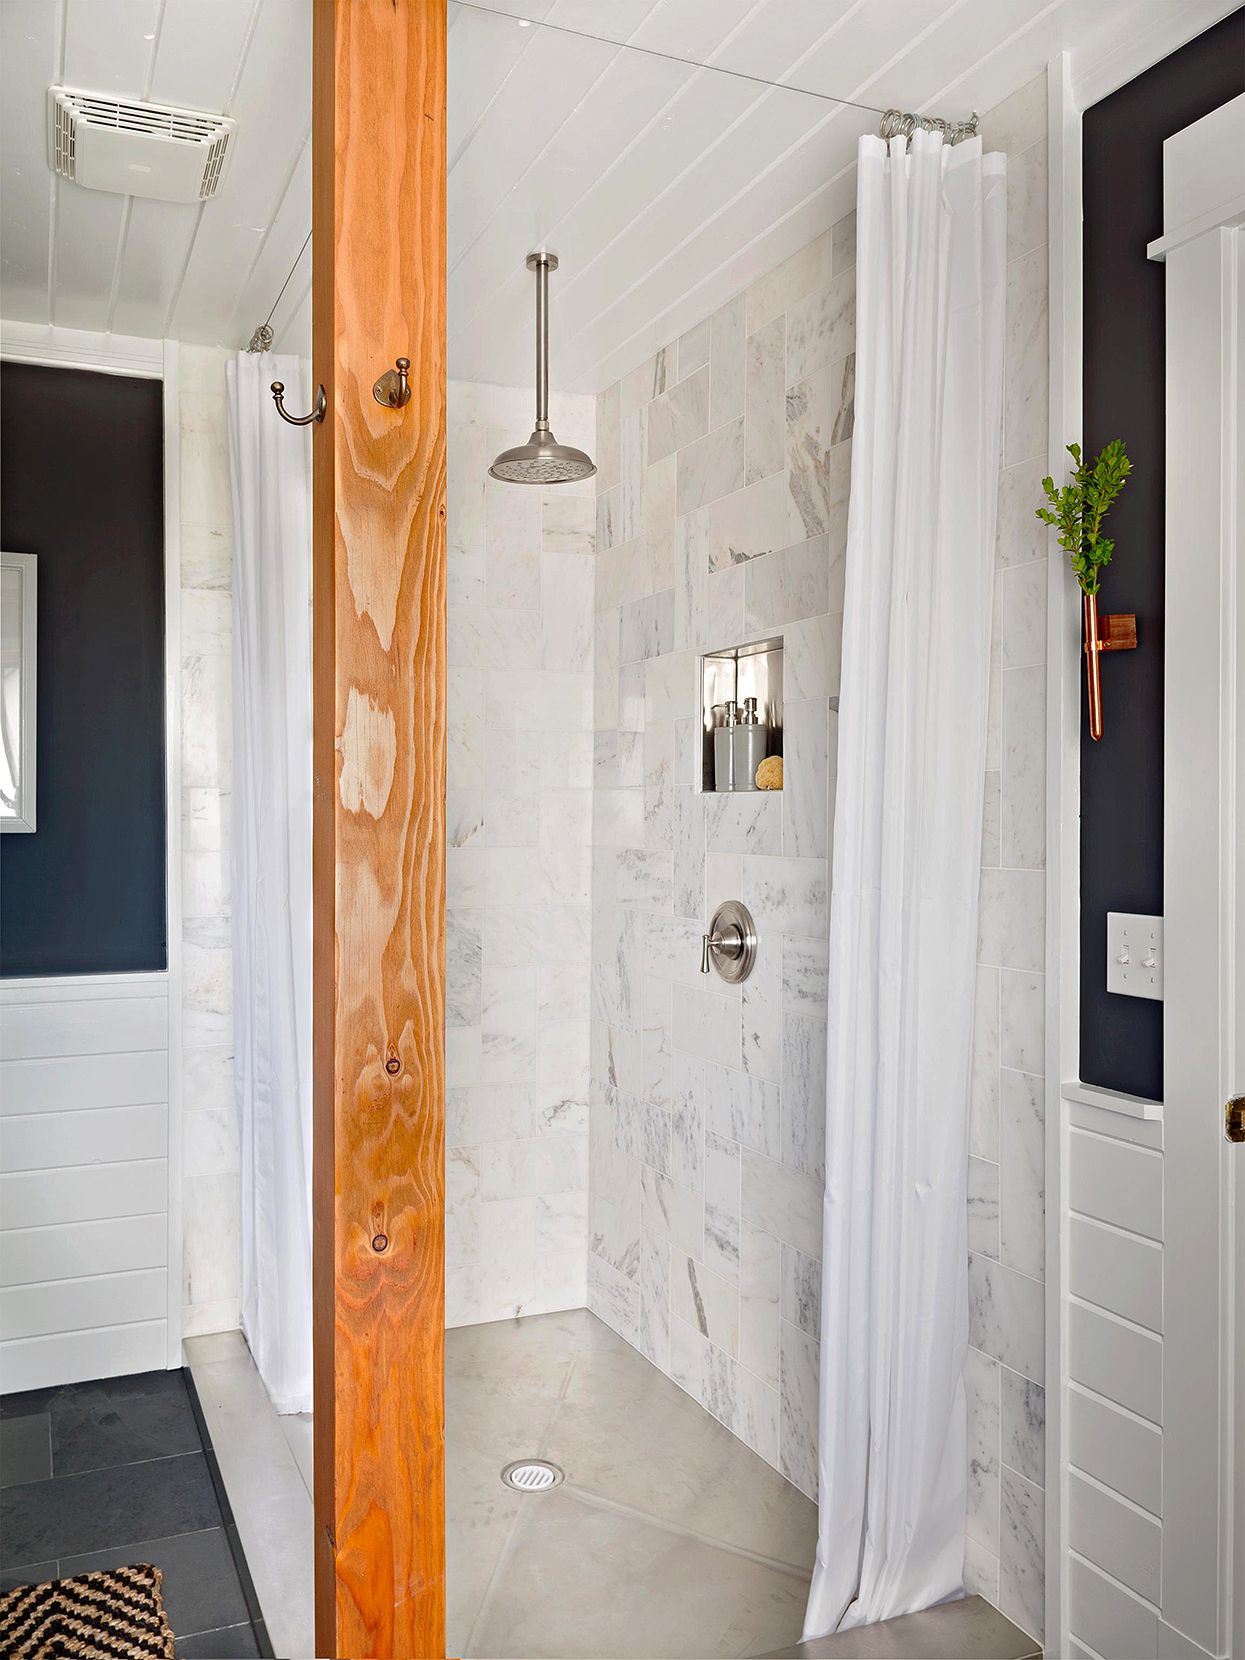 30 Home Improvement Ideas You Can Achieve For Less Than 150 In 2020 Bathroom Redecorating Small Bathroom Bathrooms Remodel